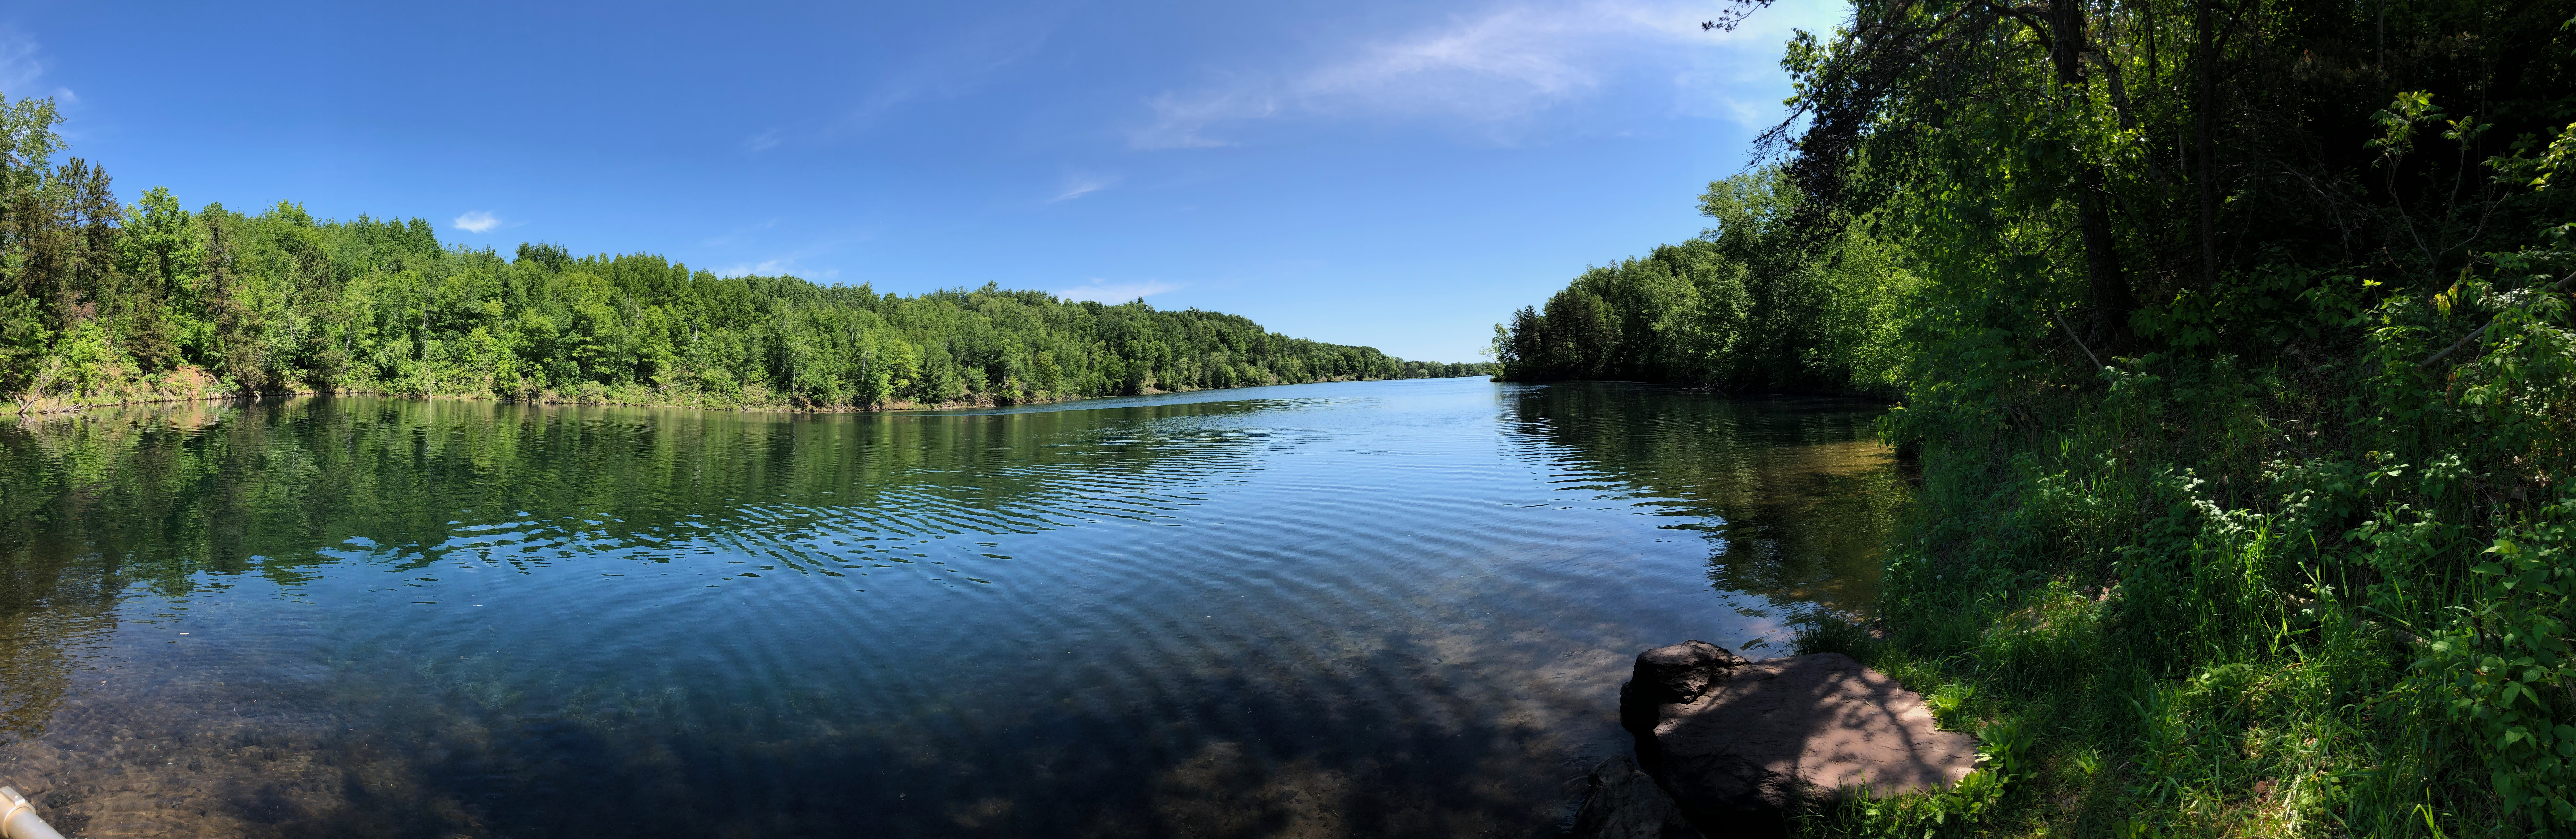 The image is of Pennington Mine Lake taken from the western shore. The narrow lake reflects the clear blue of the sky. Wooded shorelines of green forest border the lake appearing to merge in the distance.